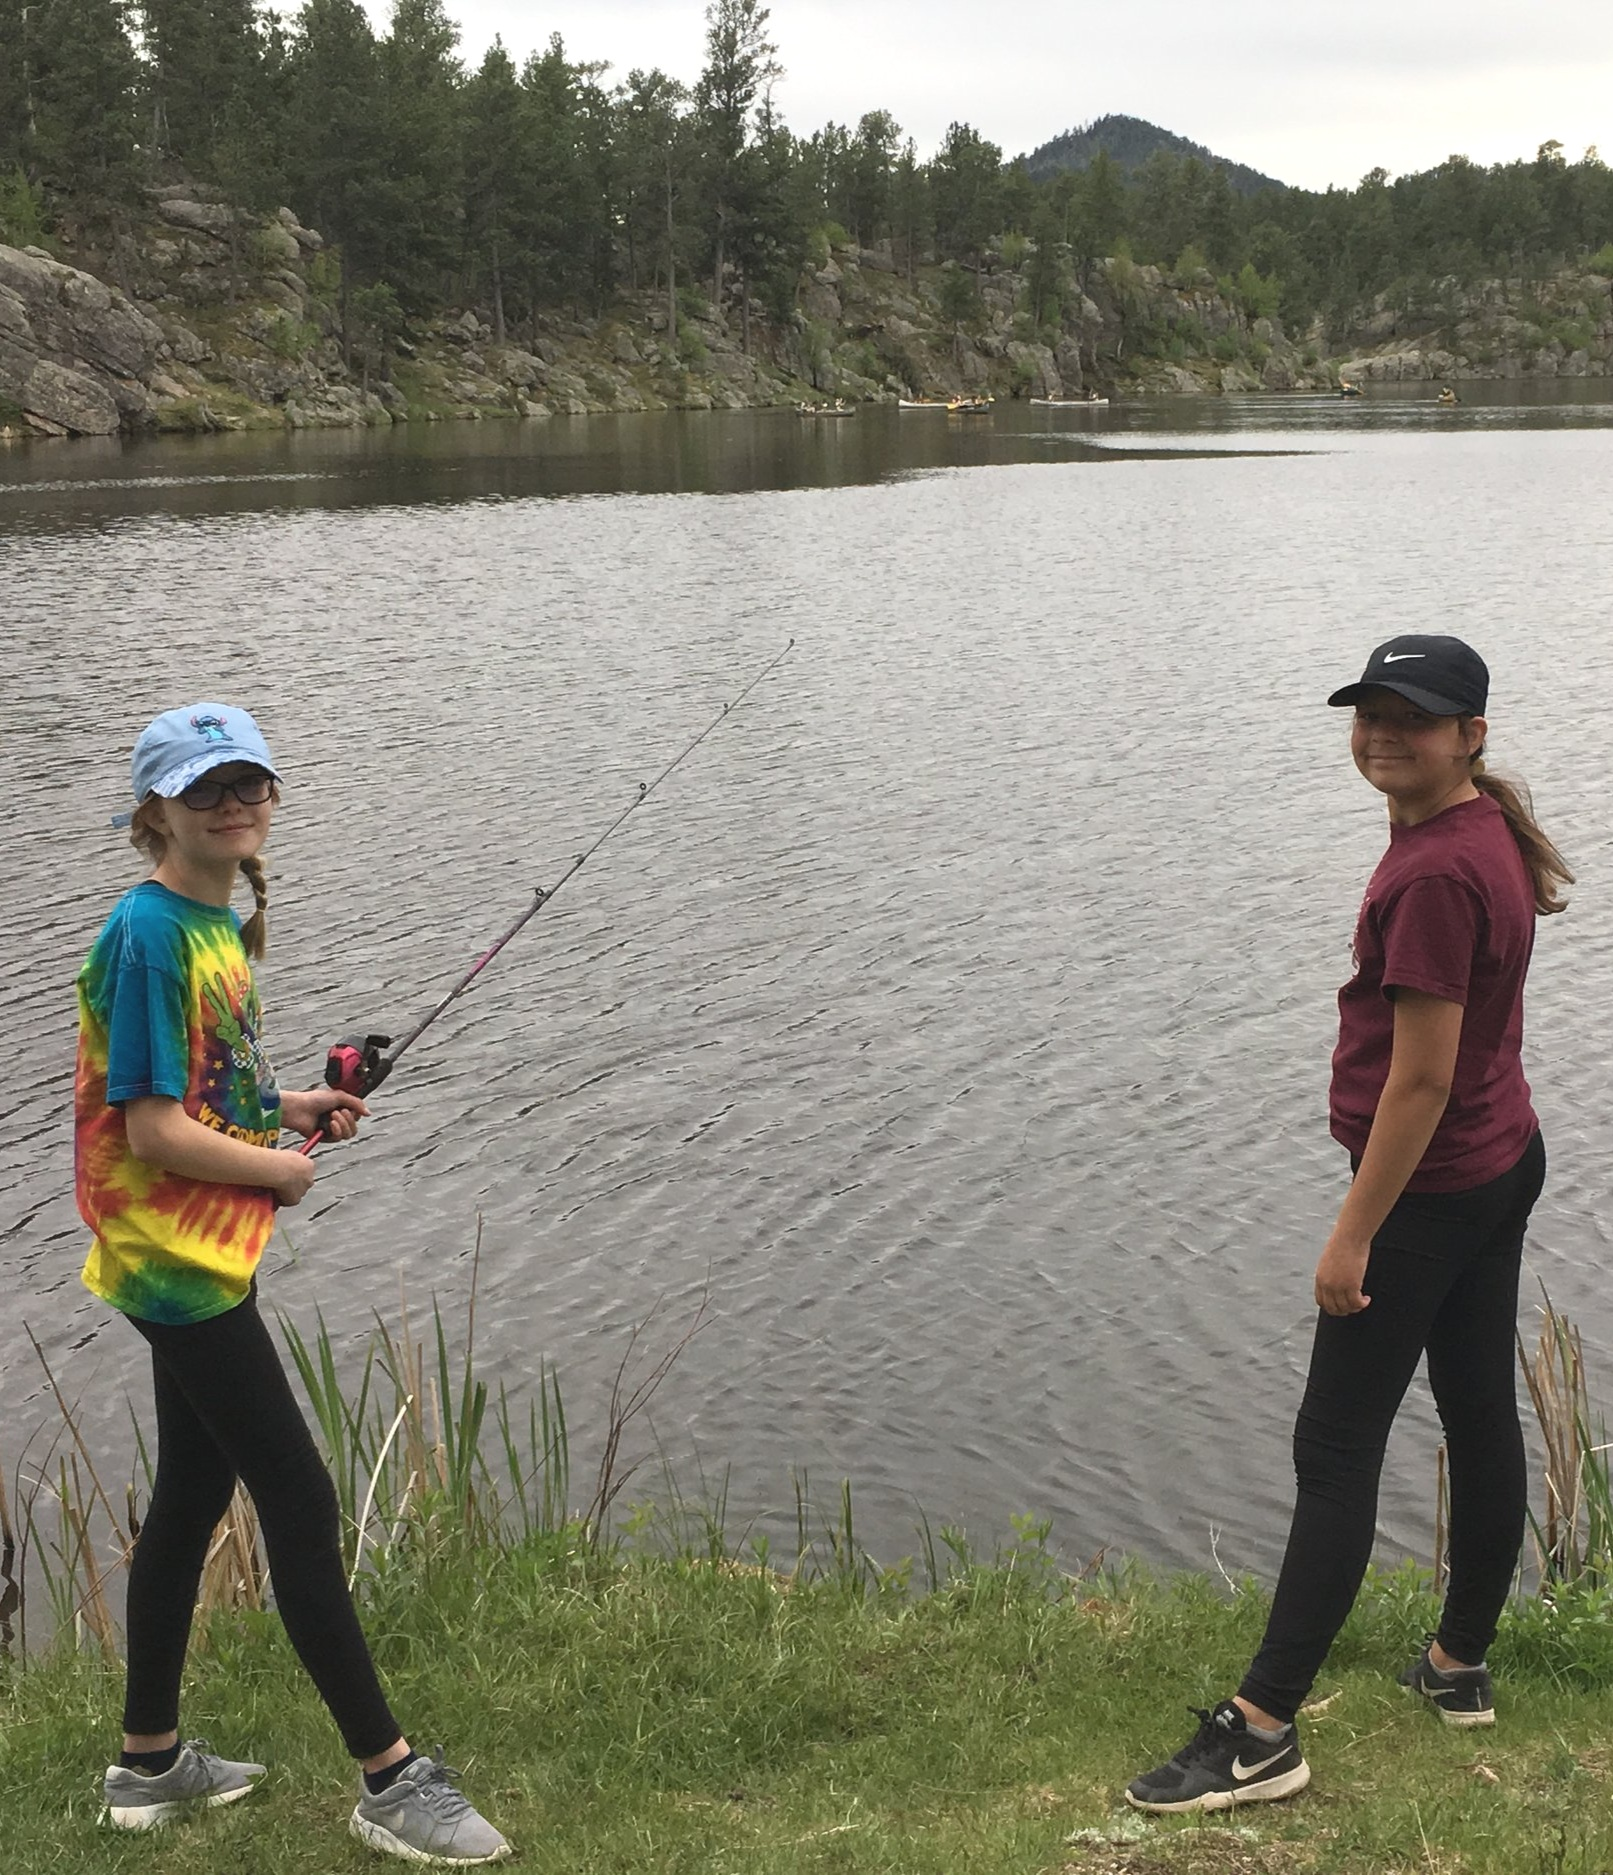 Campers enjoy the outdoors at Outlaw Ranch